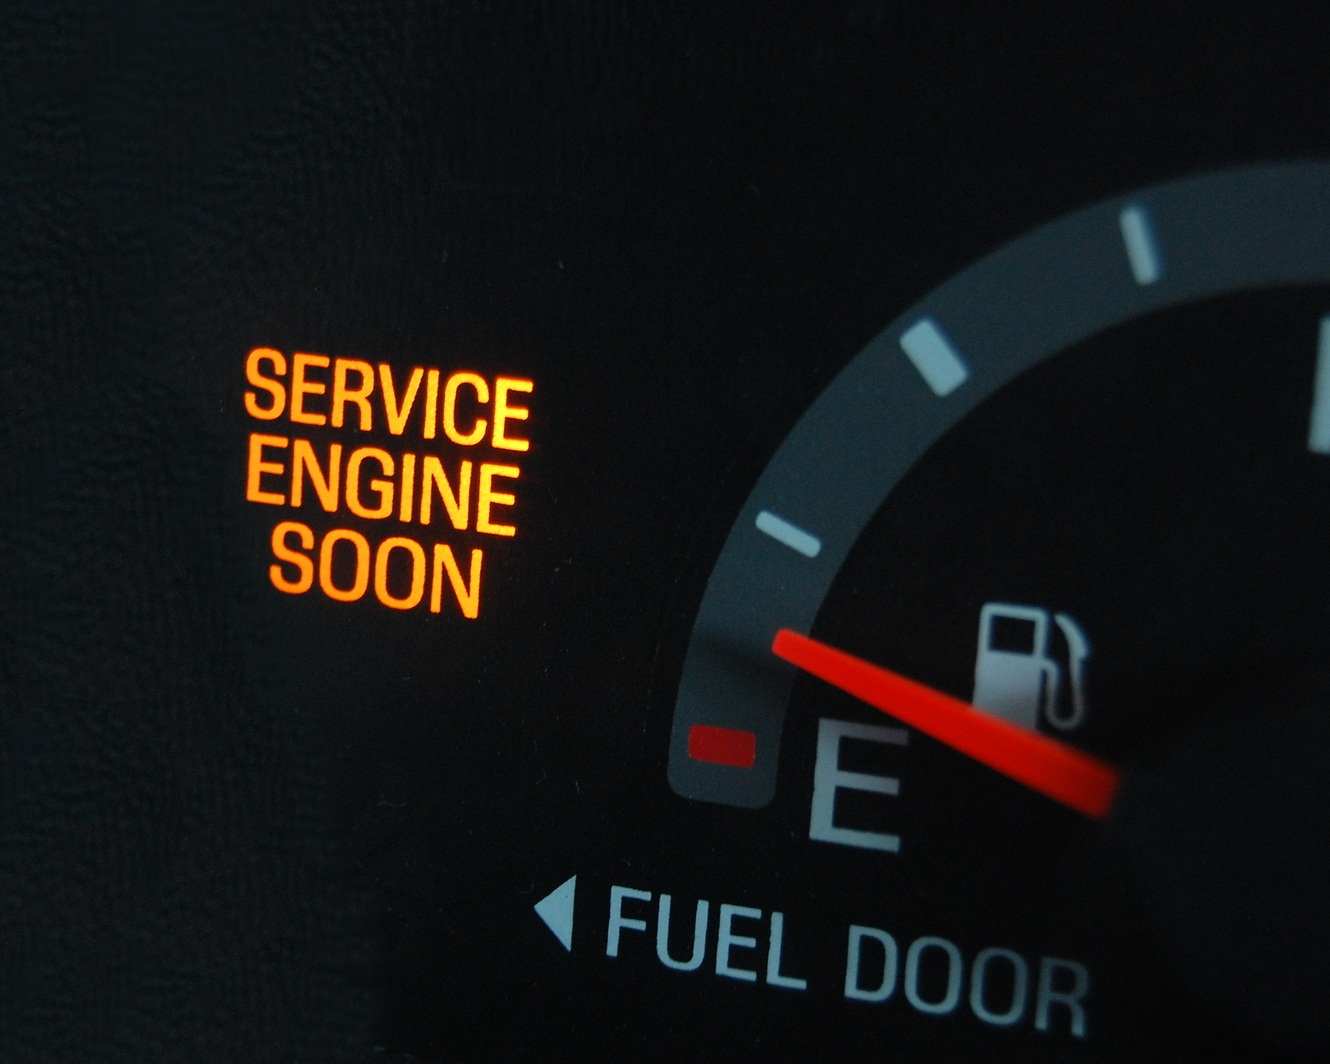 bigstock-Check-Engine-light-4002090.jpg